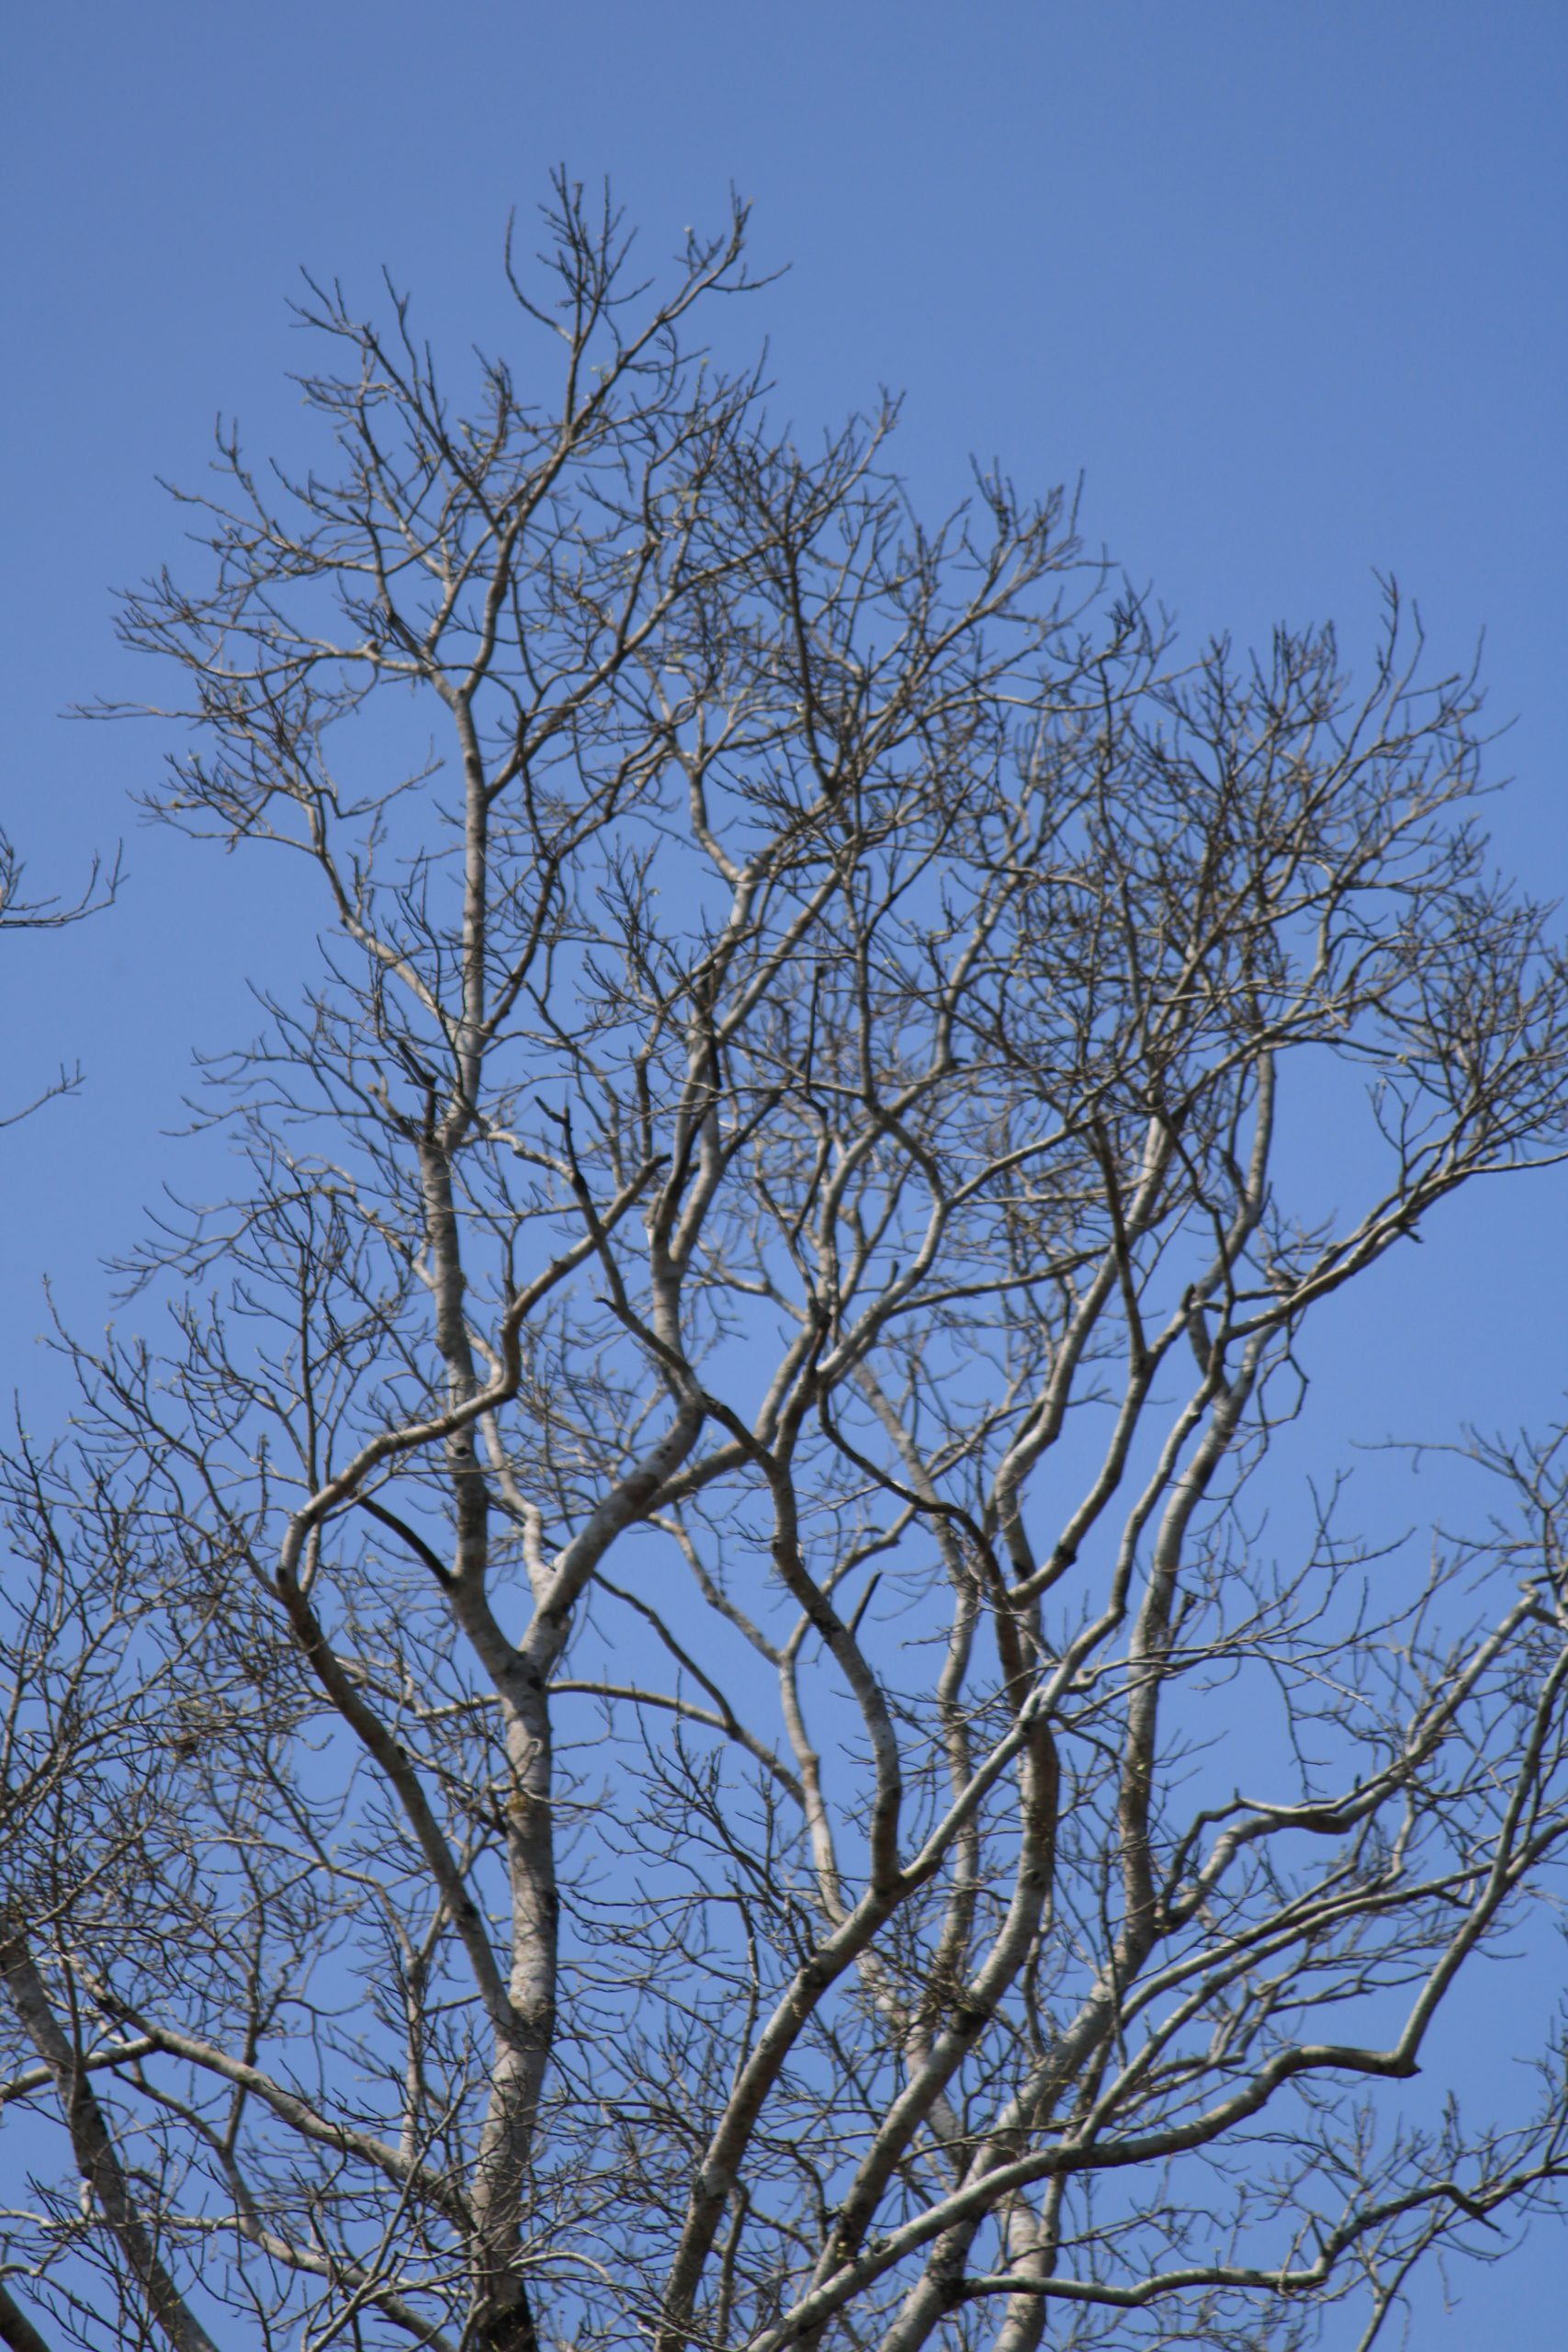 Branches of a dry tree